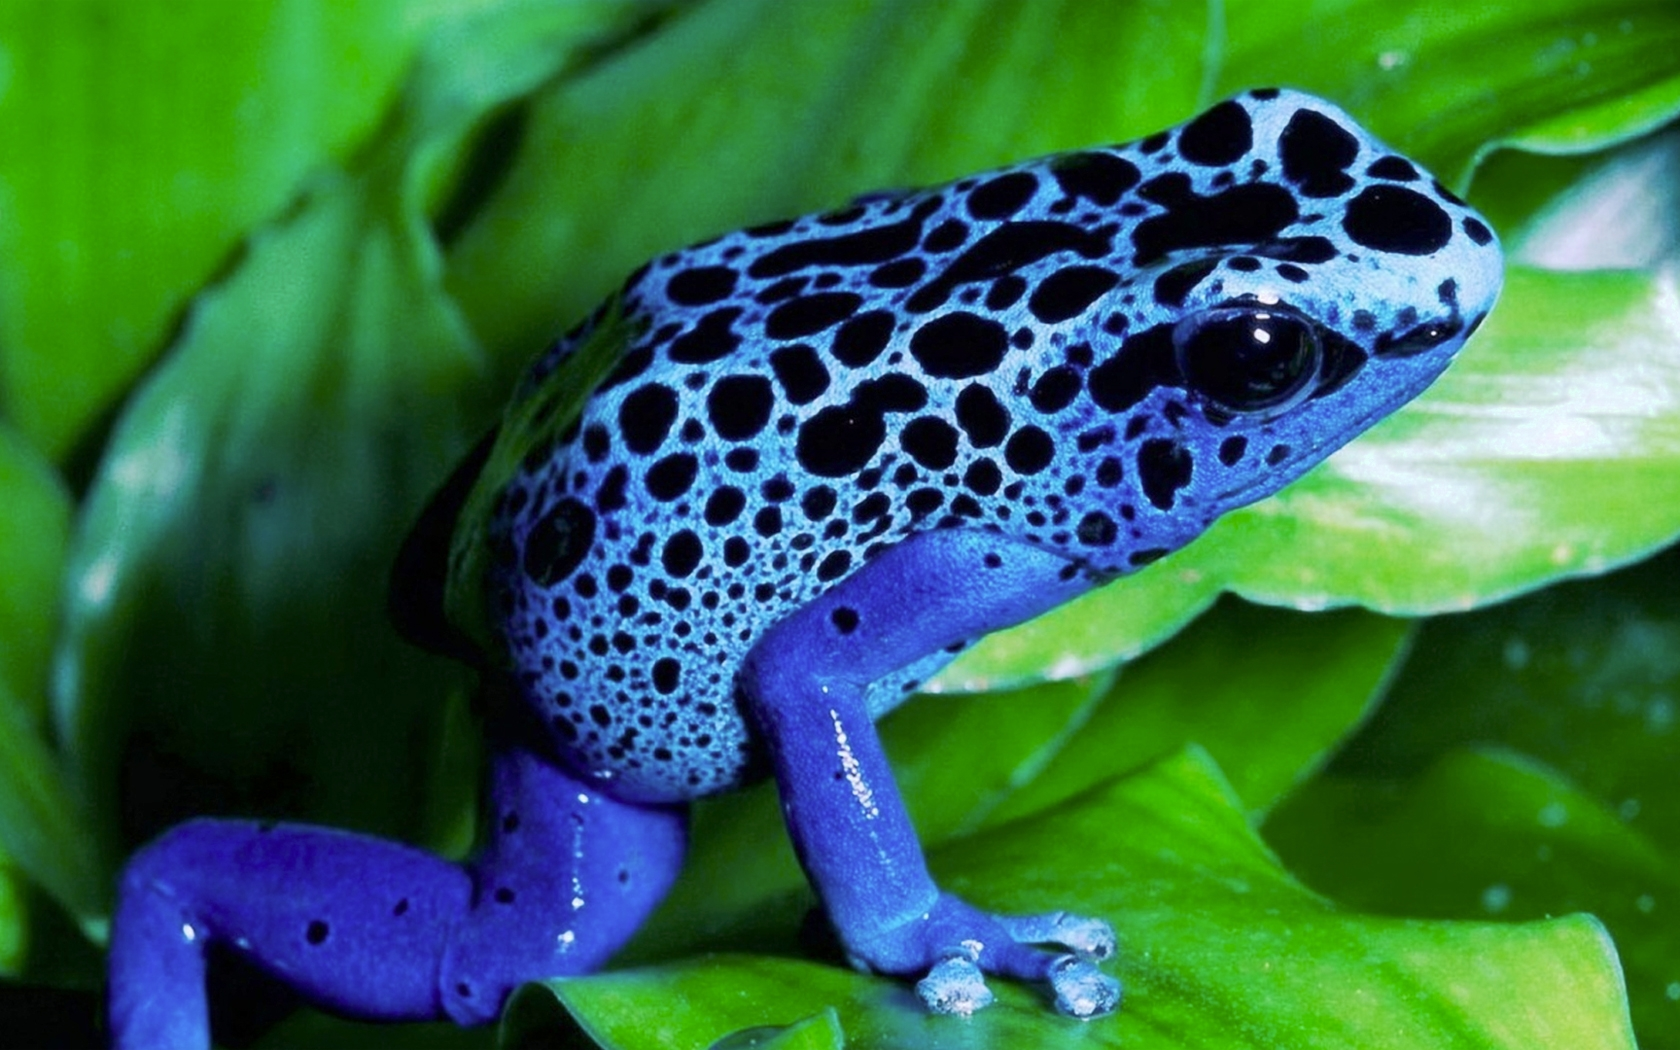 frogs amphibians poison dart frogs 1680x1050 wallpaper High 1680x1050